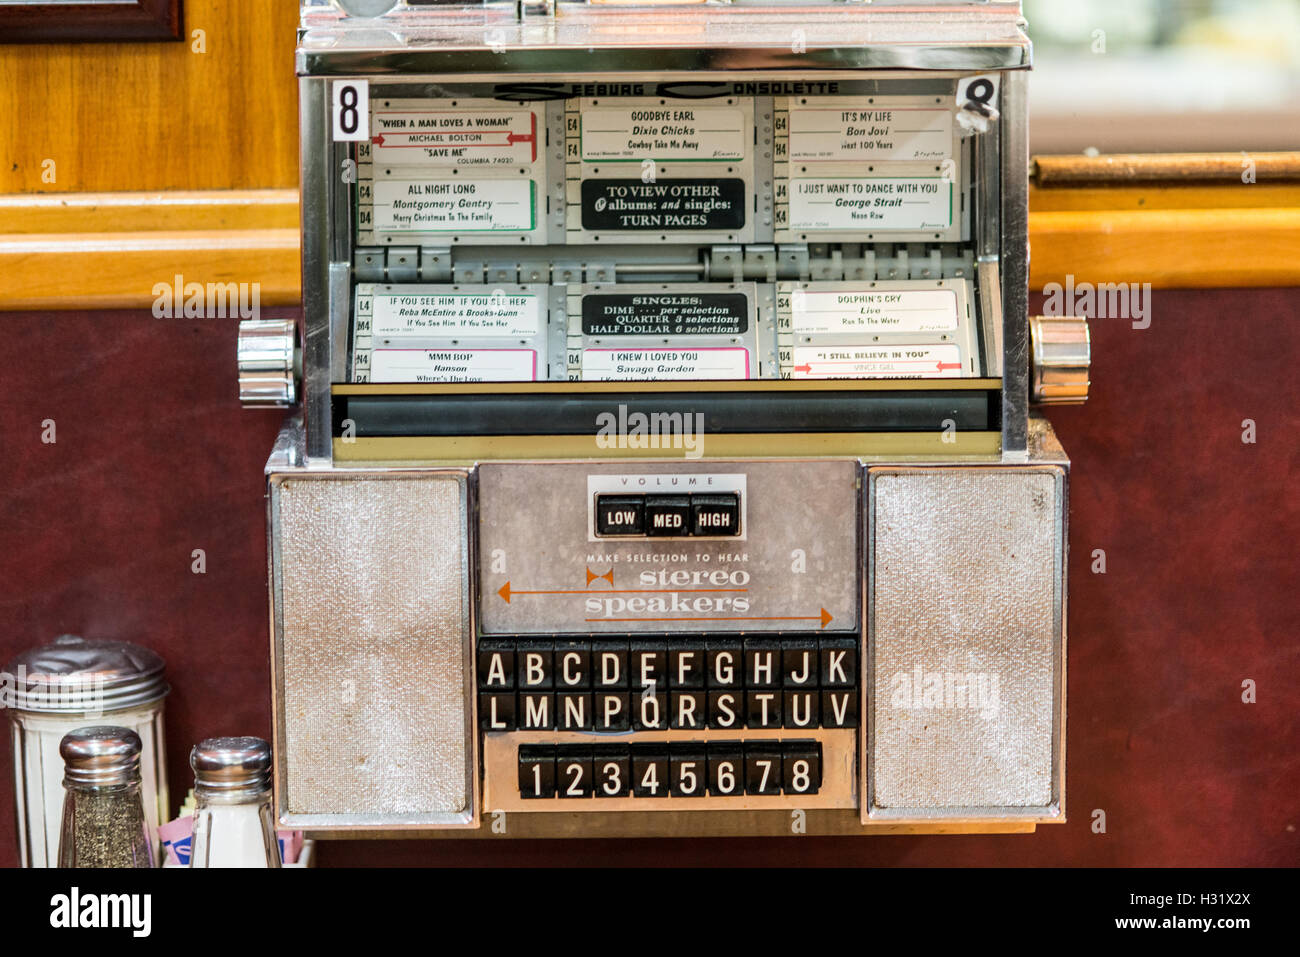 Jukebox at a diner in Maryland - Stock Image